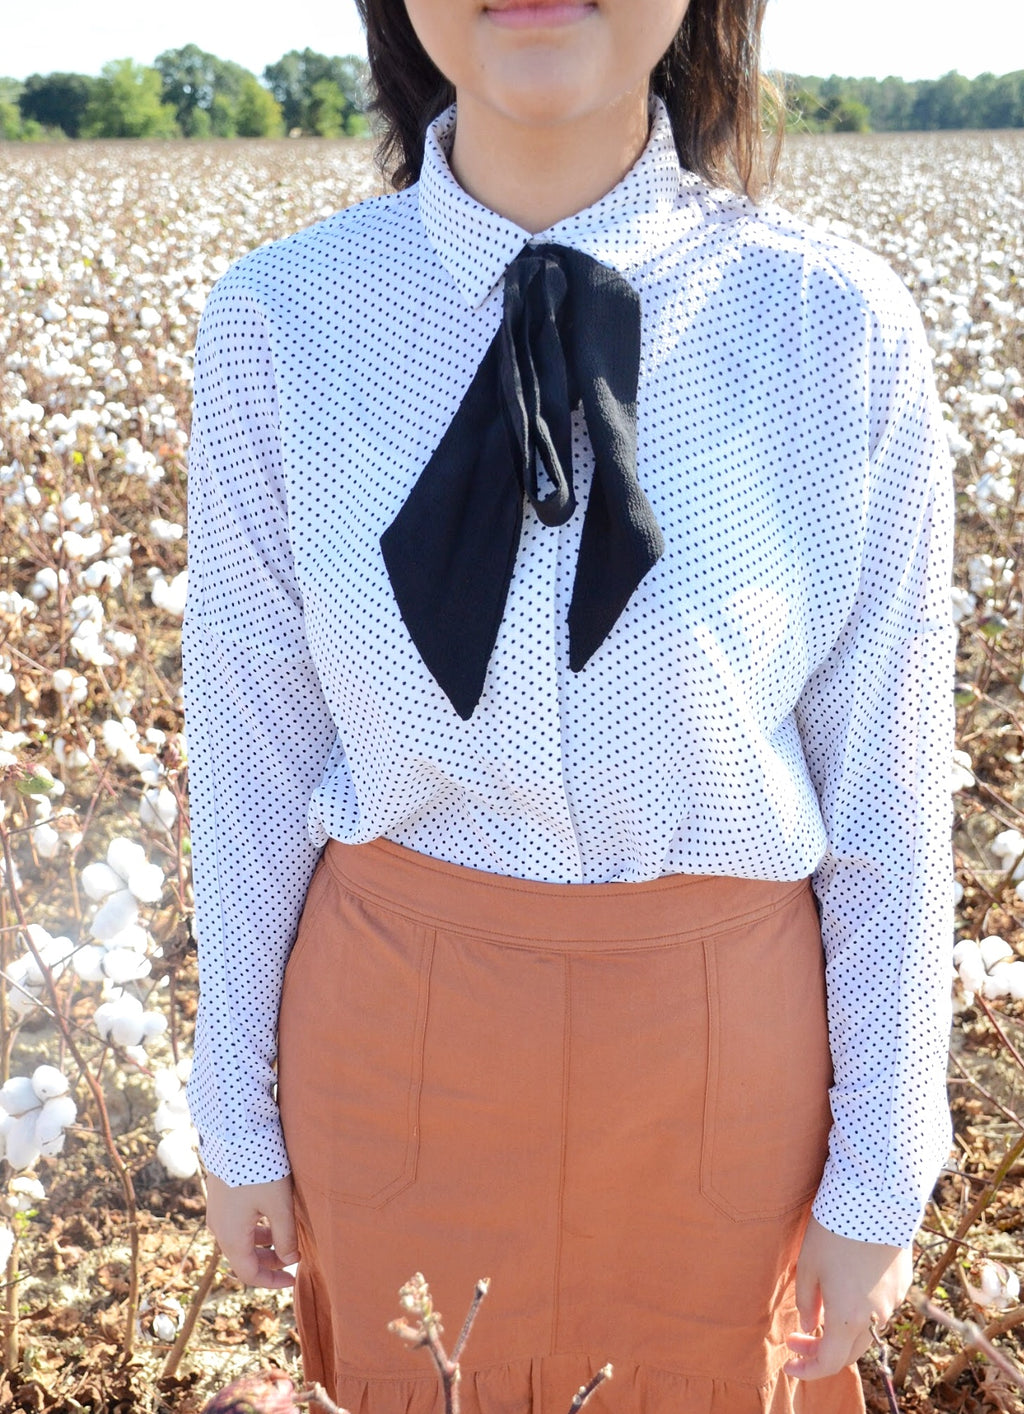 *FINAL SALE* The Parisian Blouse